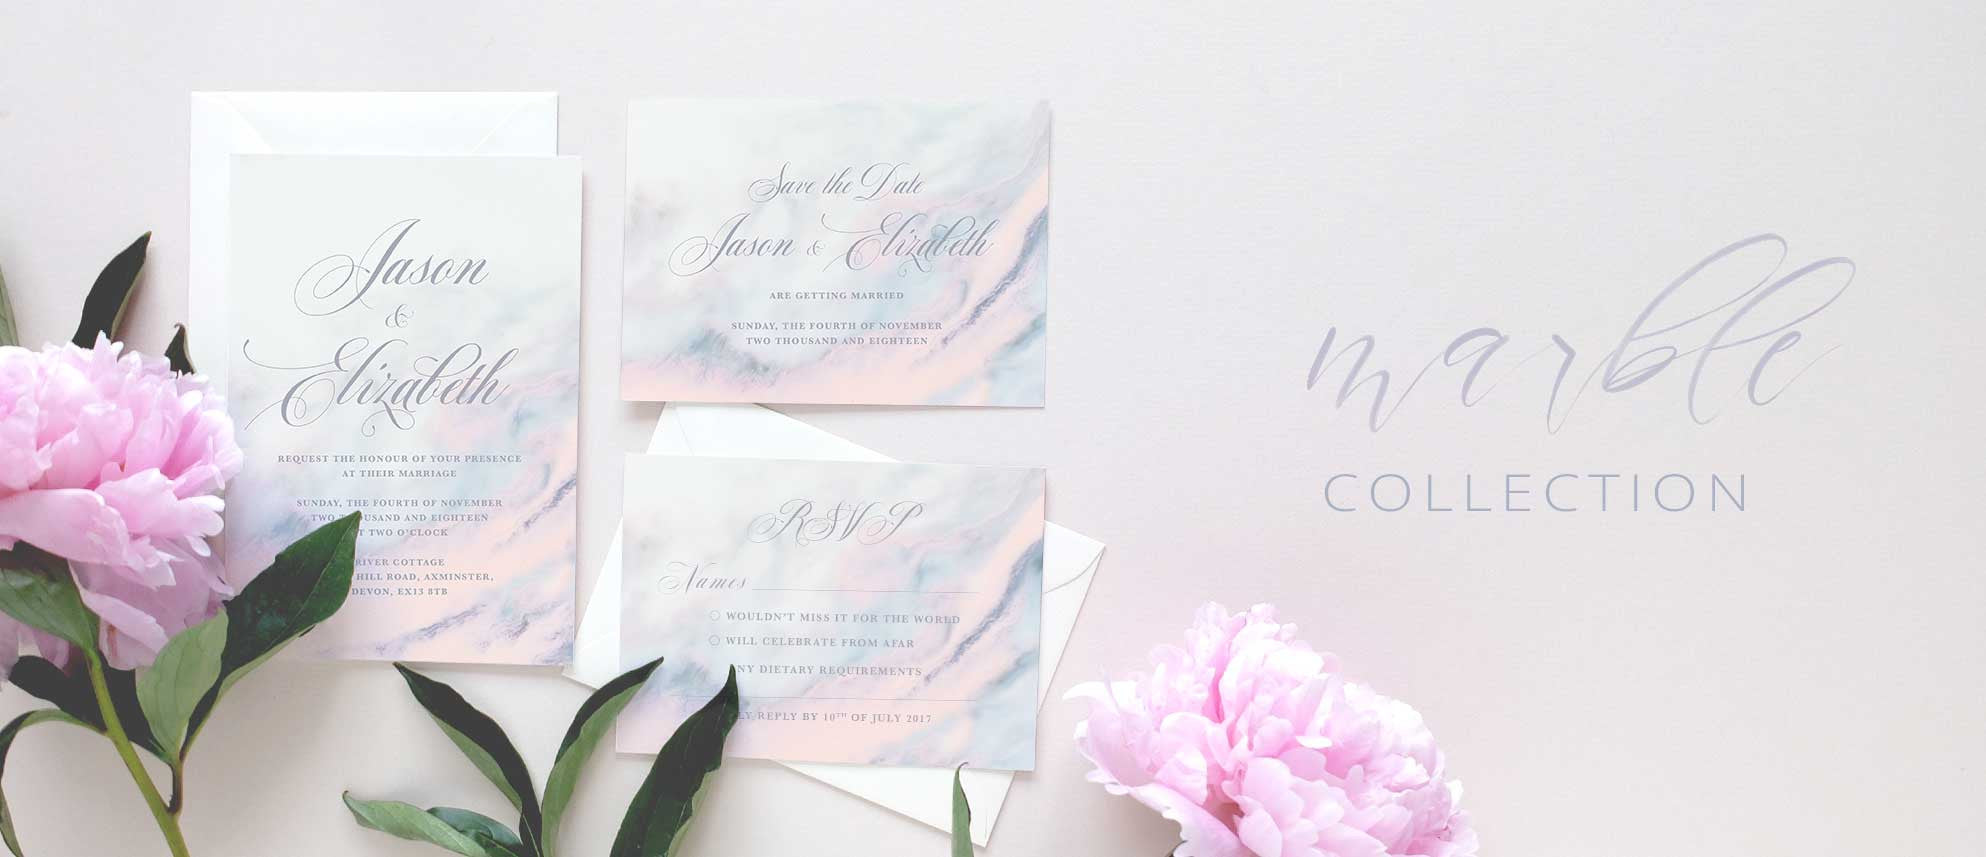 Marble | Wedding invitation collection – Blush and Gold